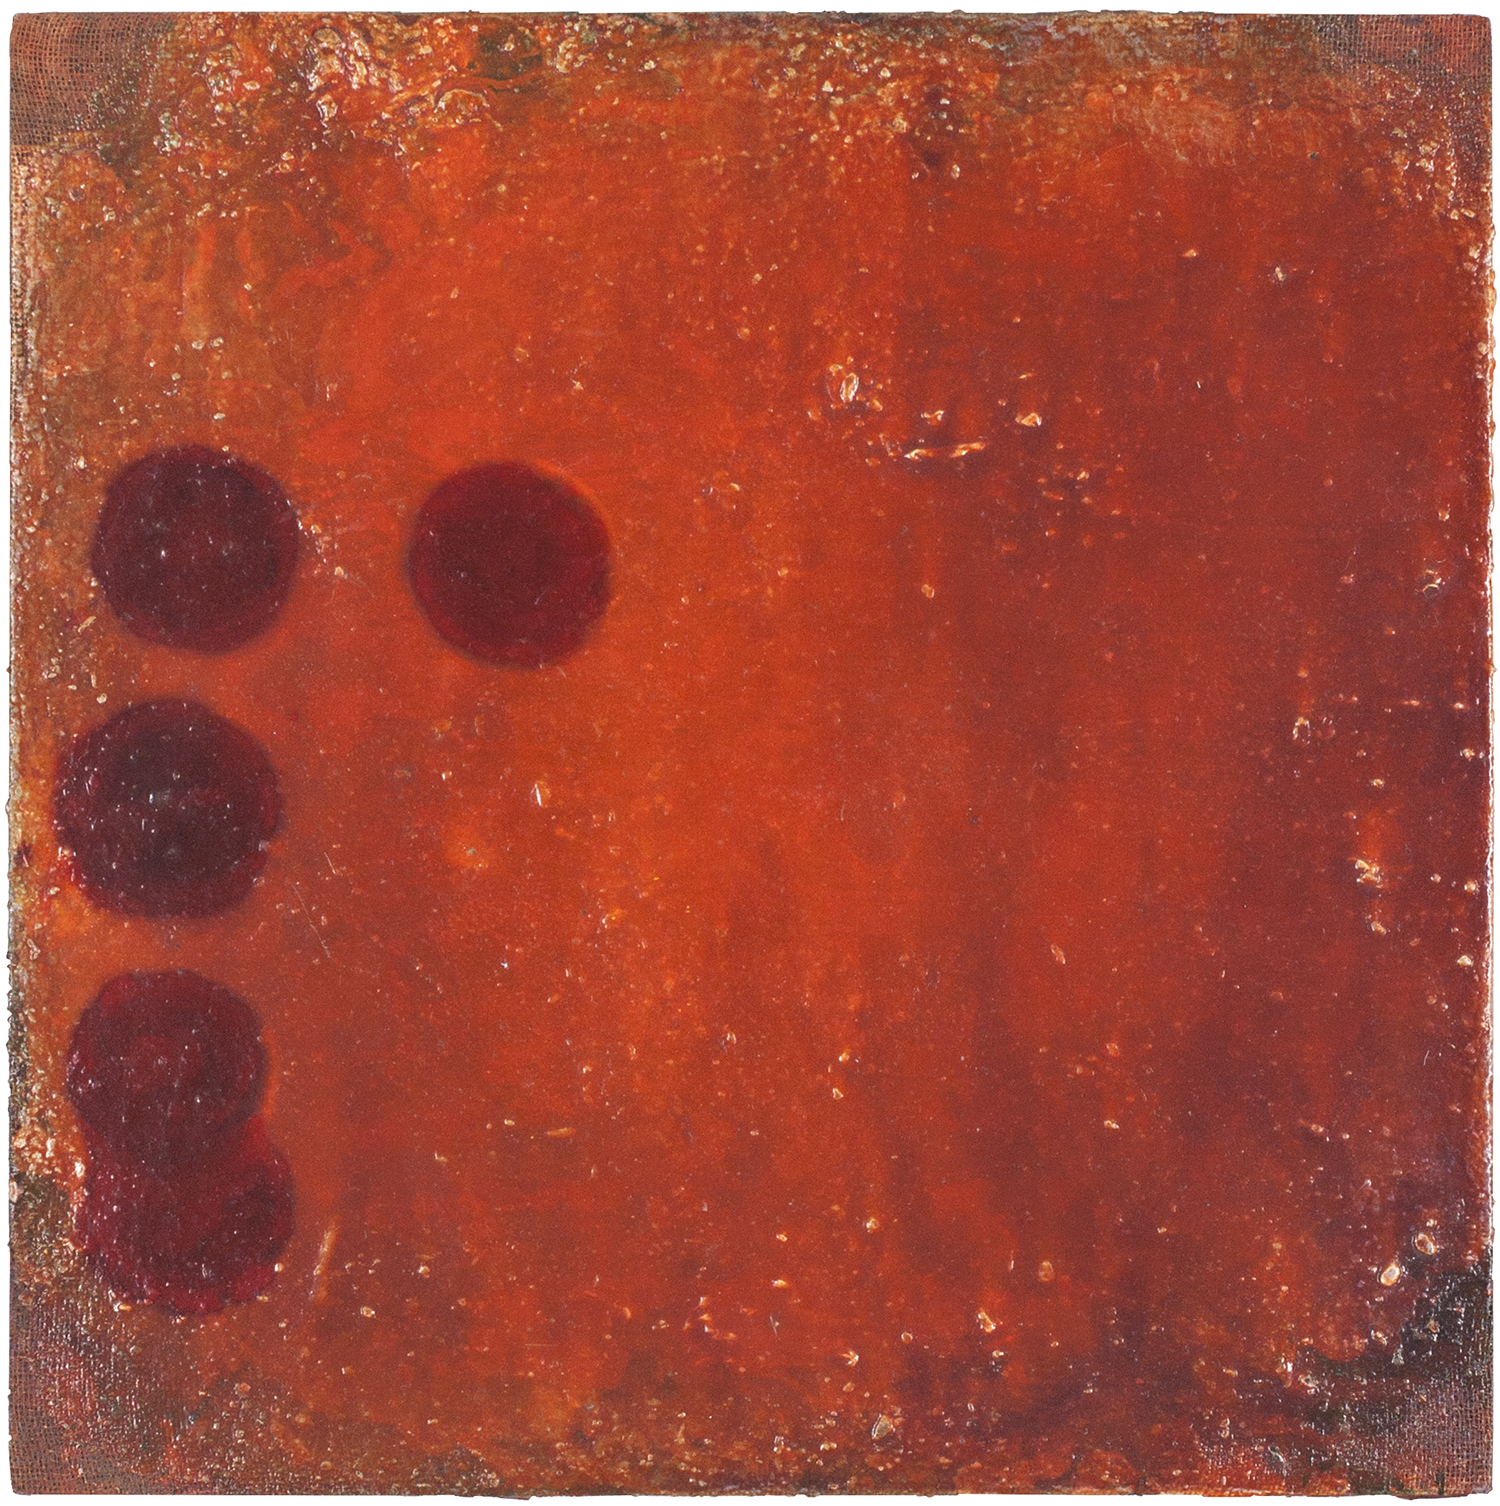 Untitled #5 (dots), 2002